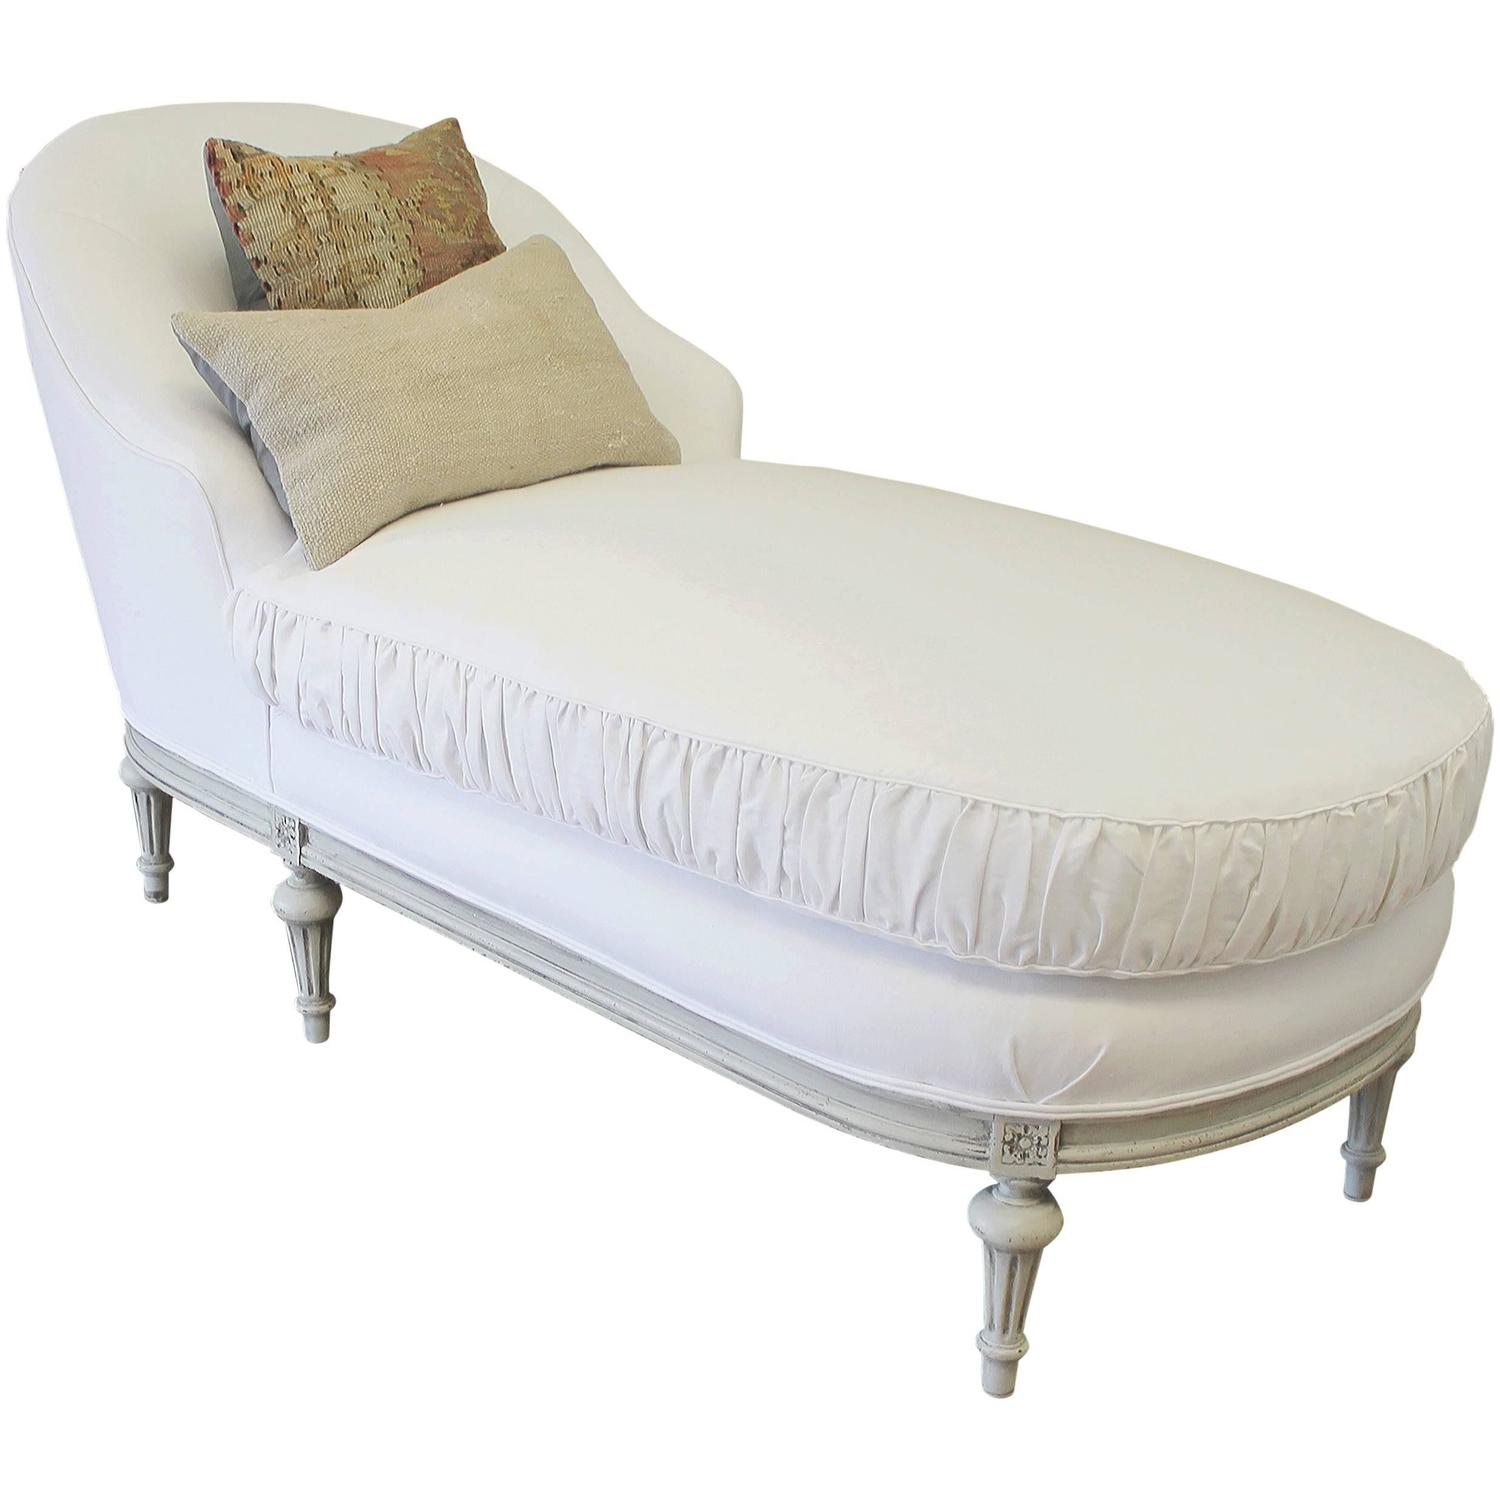 Antique louis xvi style french chaise longue in belgian for Chaise louis xvi